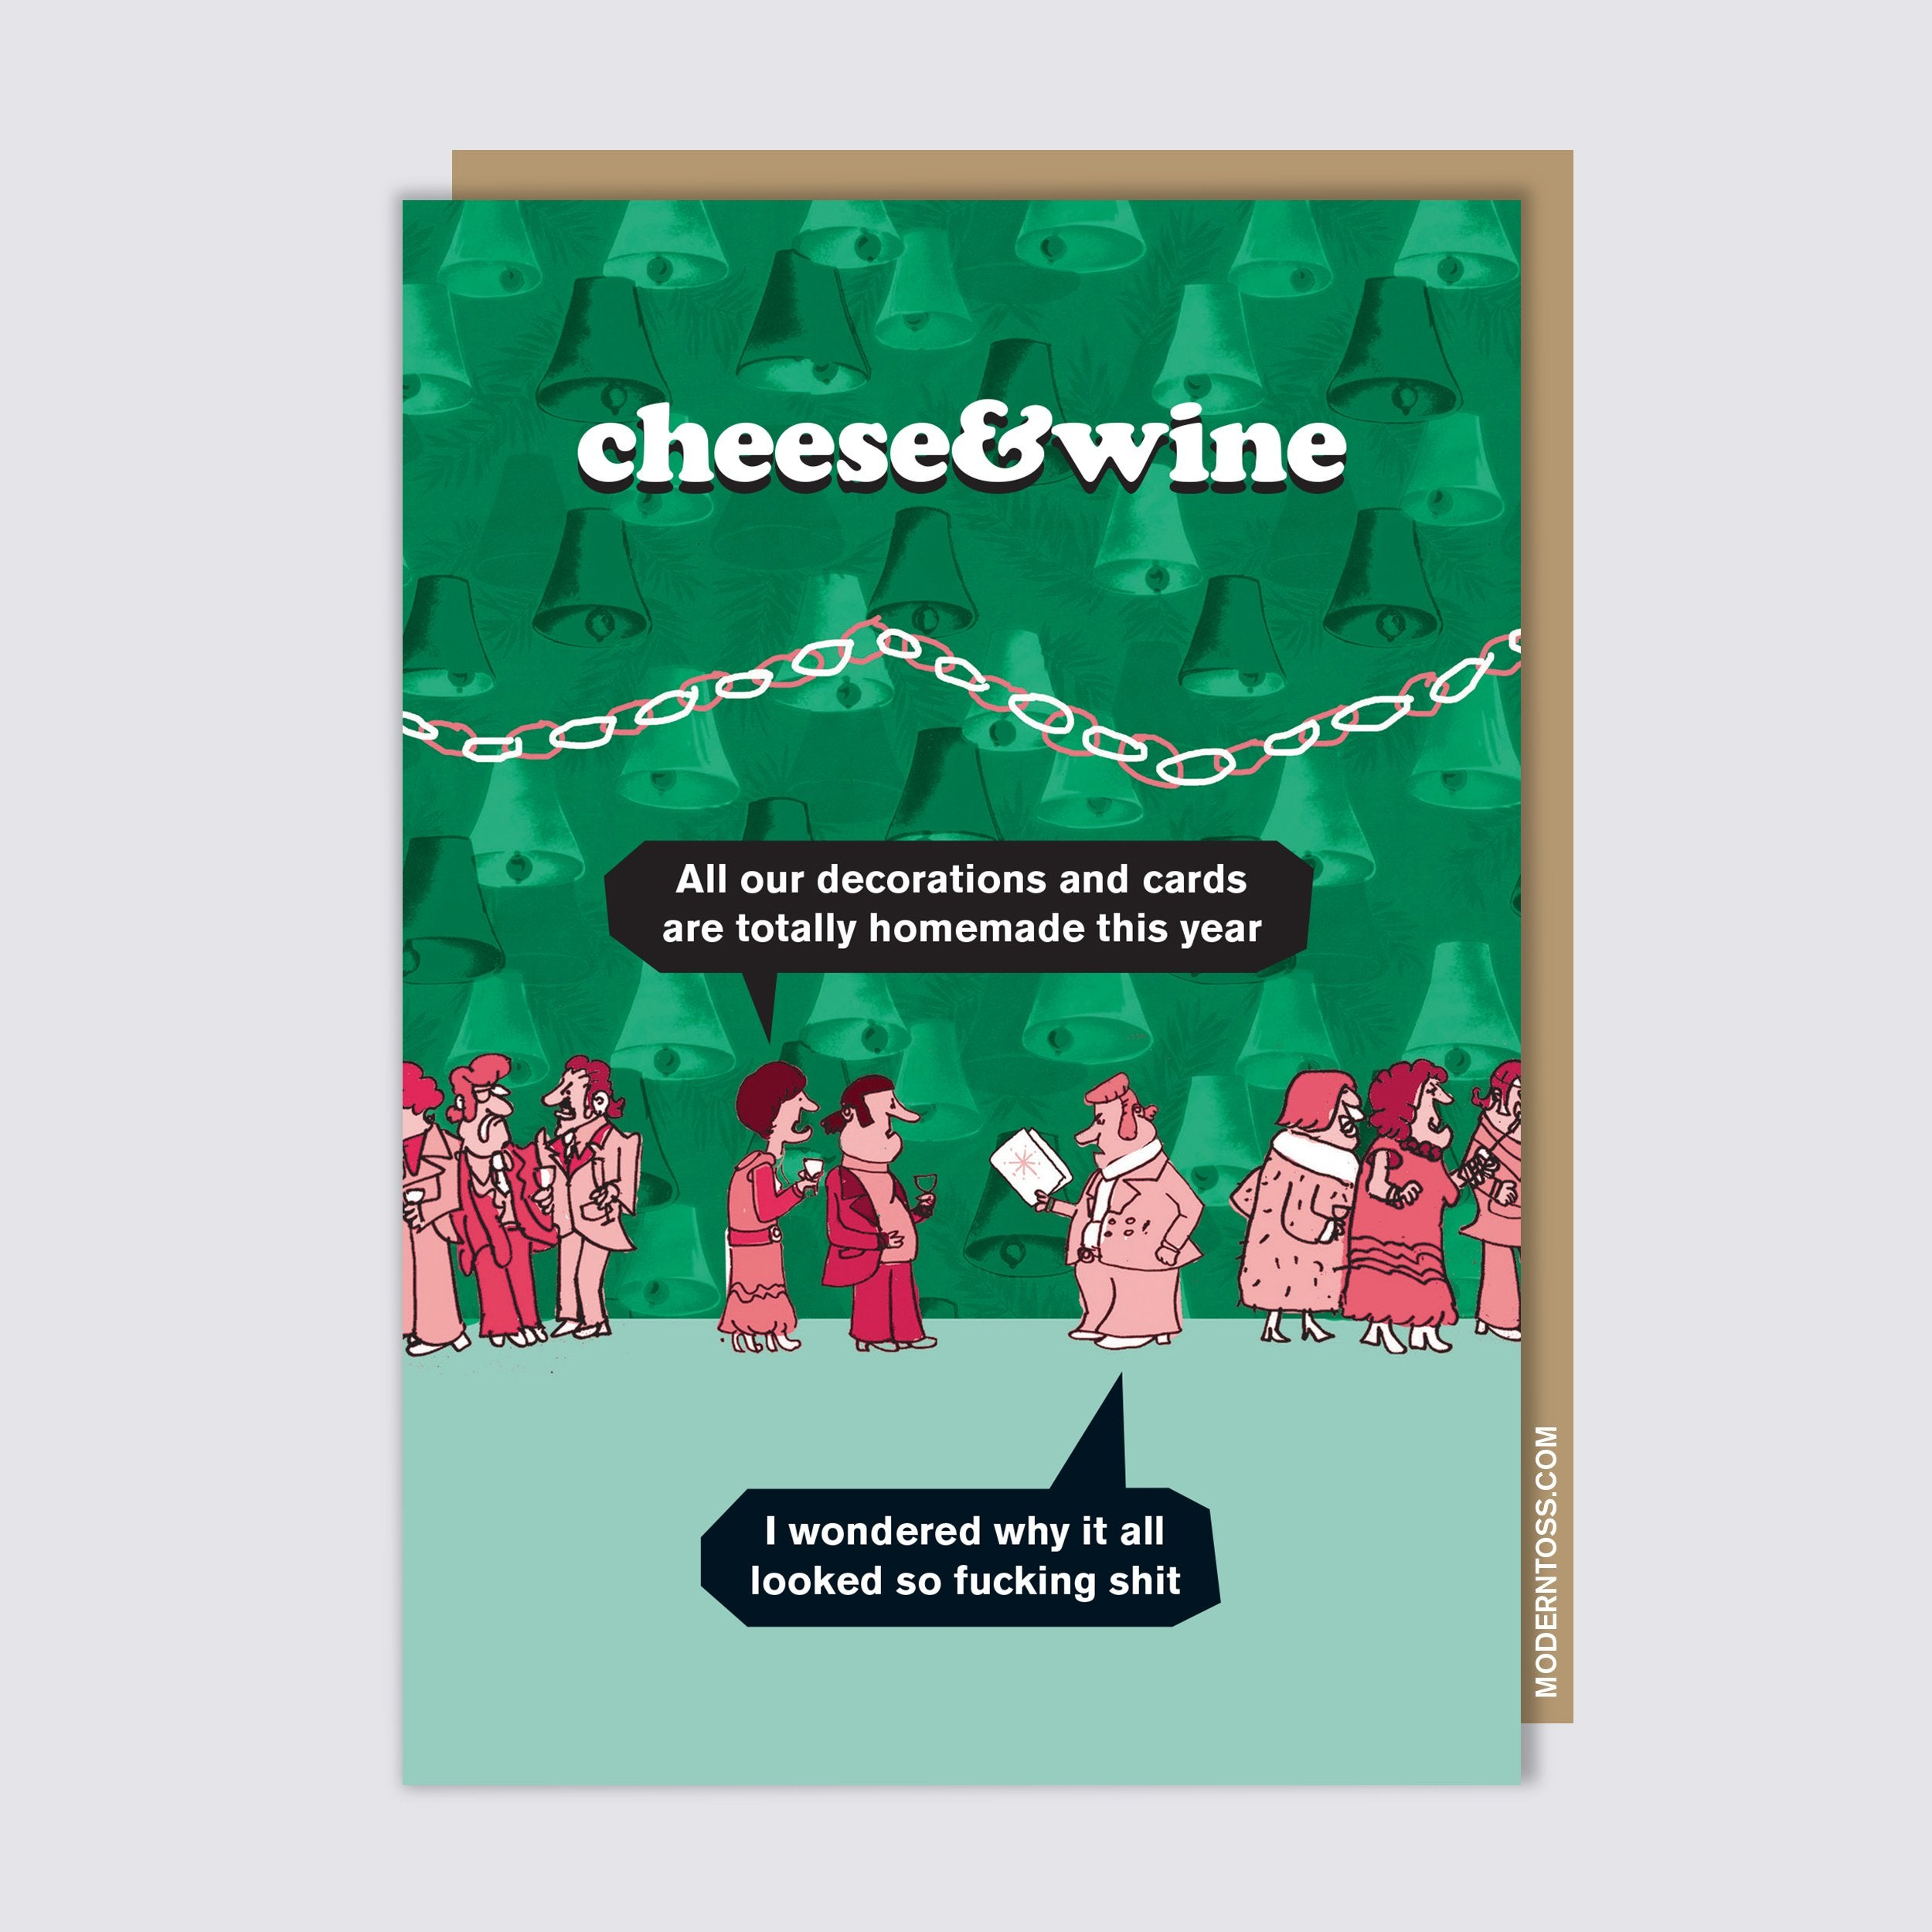 Cheese & Wine Decorations Card